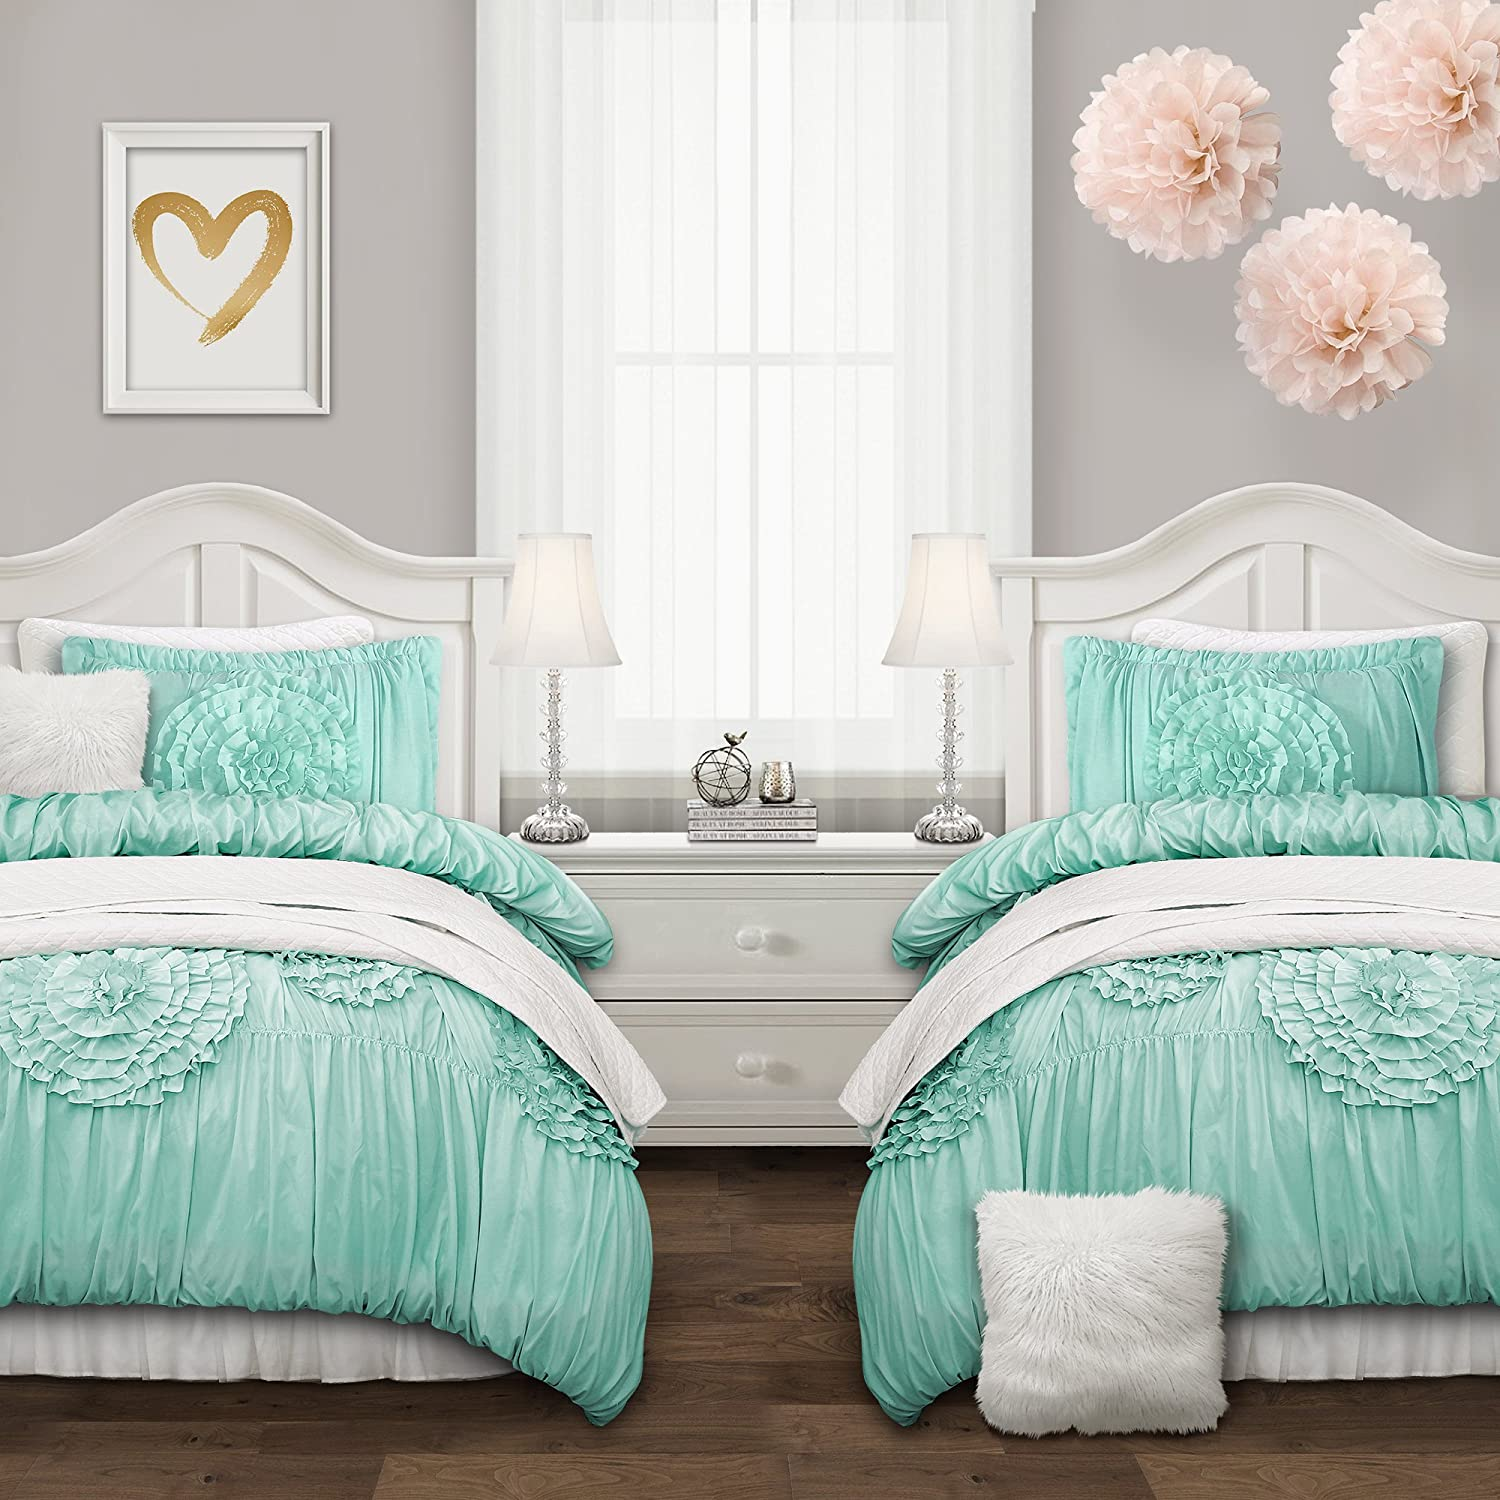 Lush Decor Serena Comforter Aqua Ruched Flower 3 Piece Set, Full/Queen